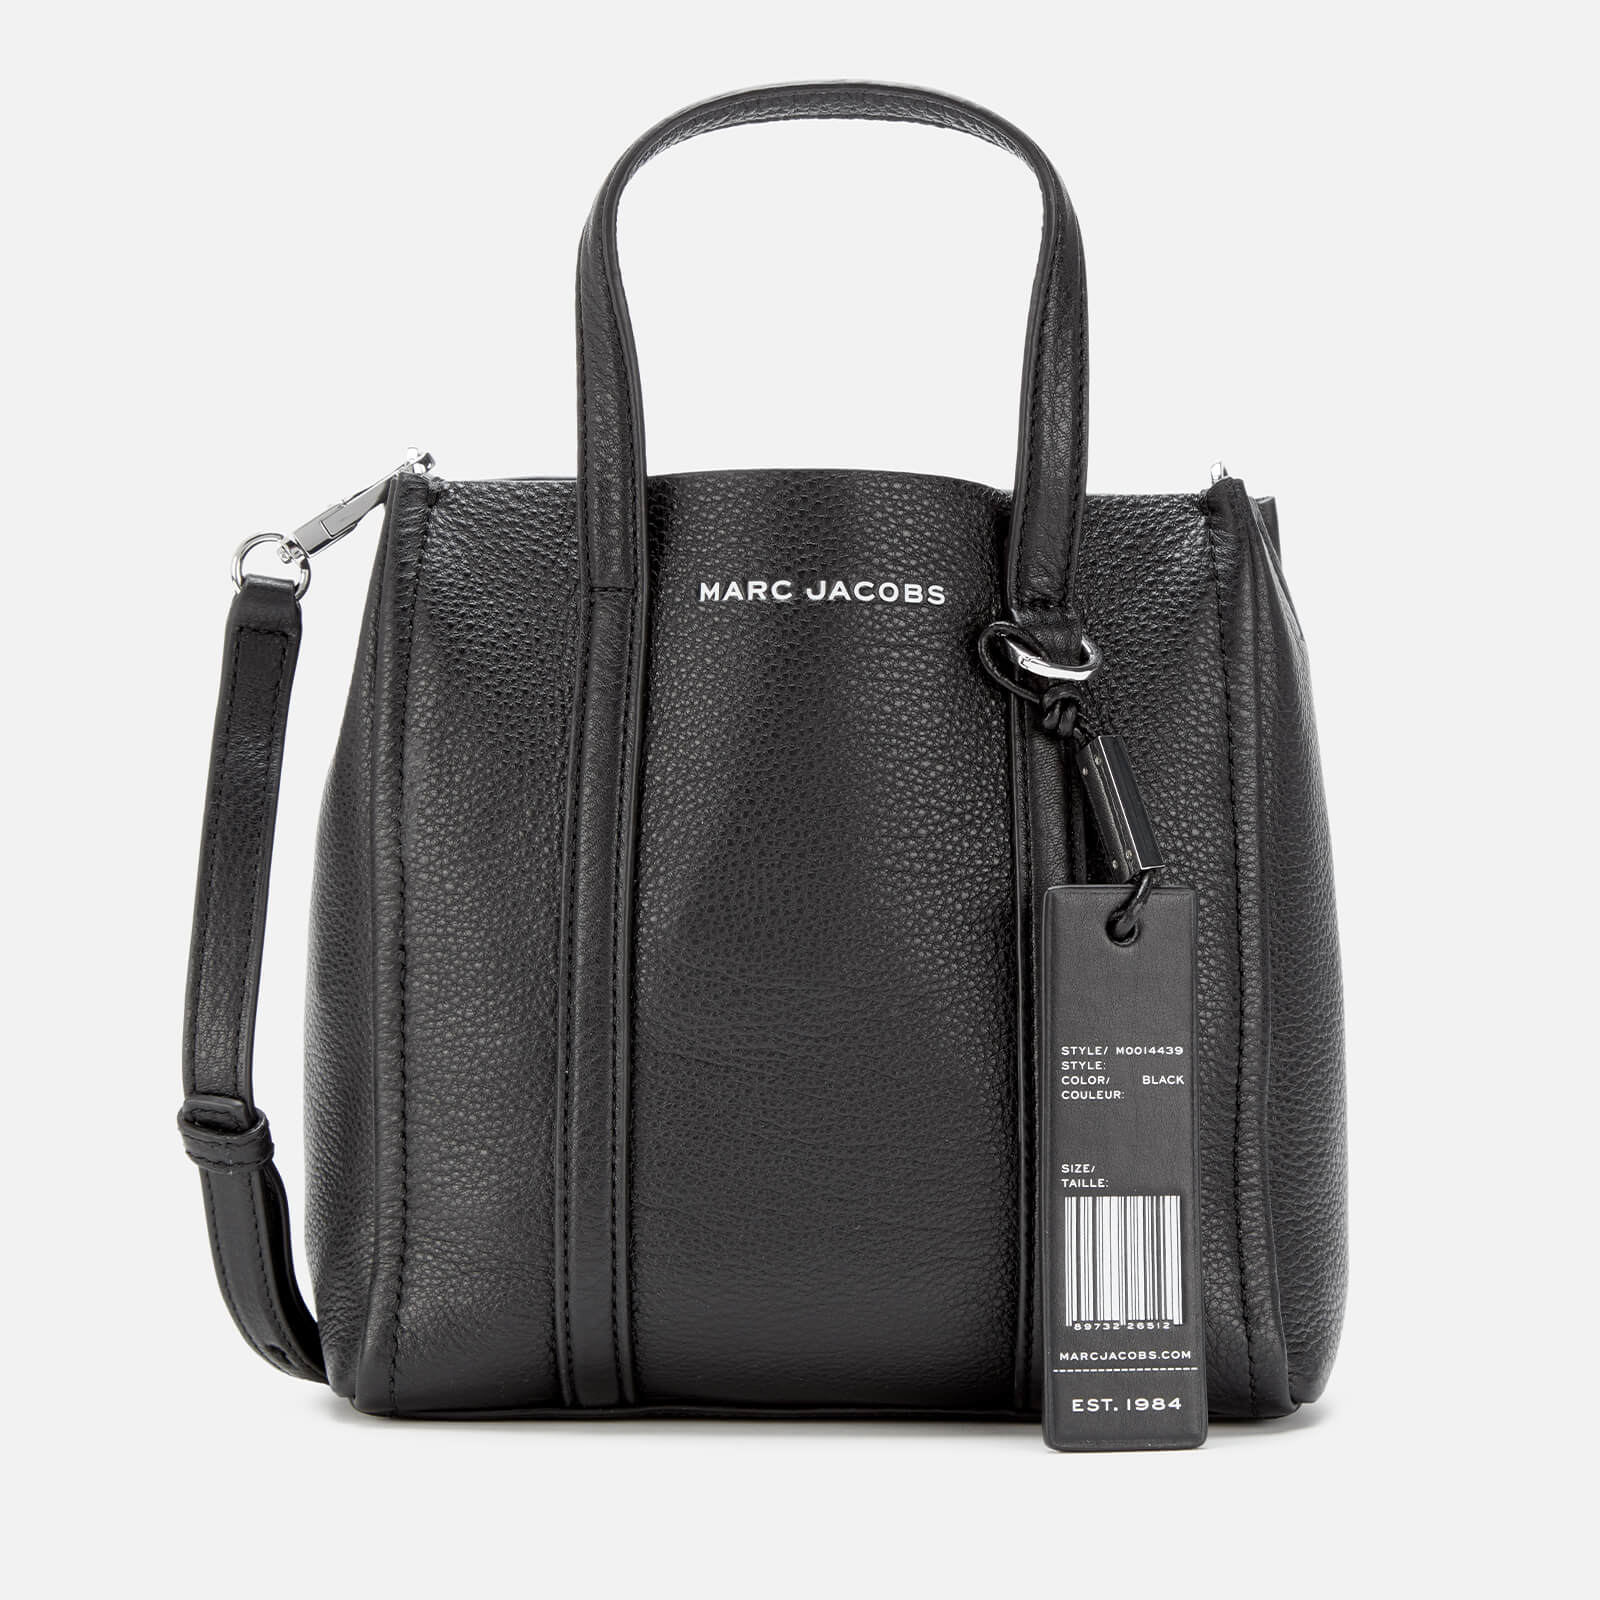 BLACK AND WHITE THE TAG 21 TOTE BAG